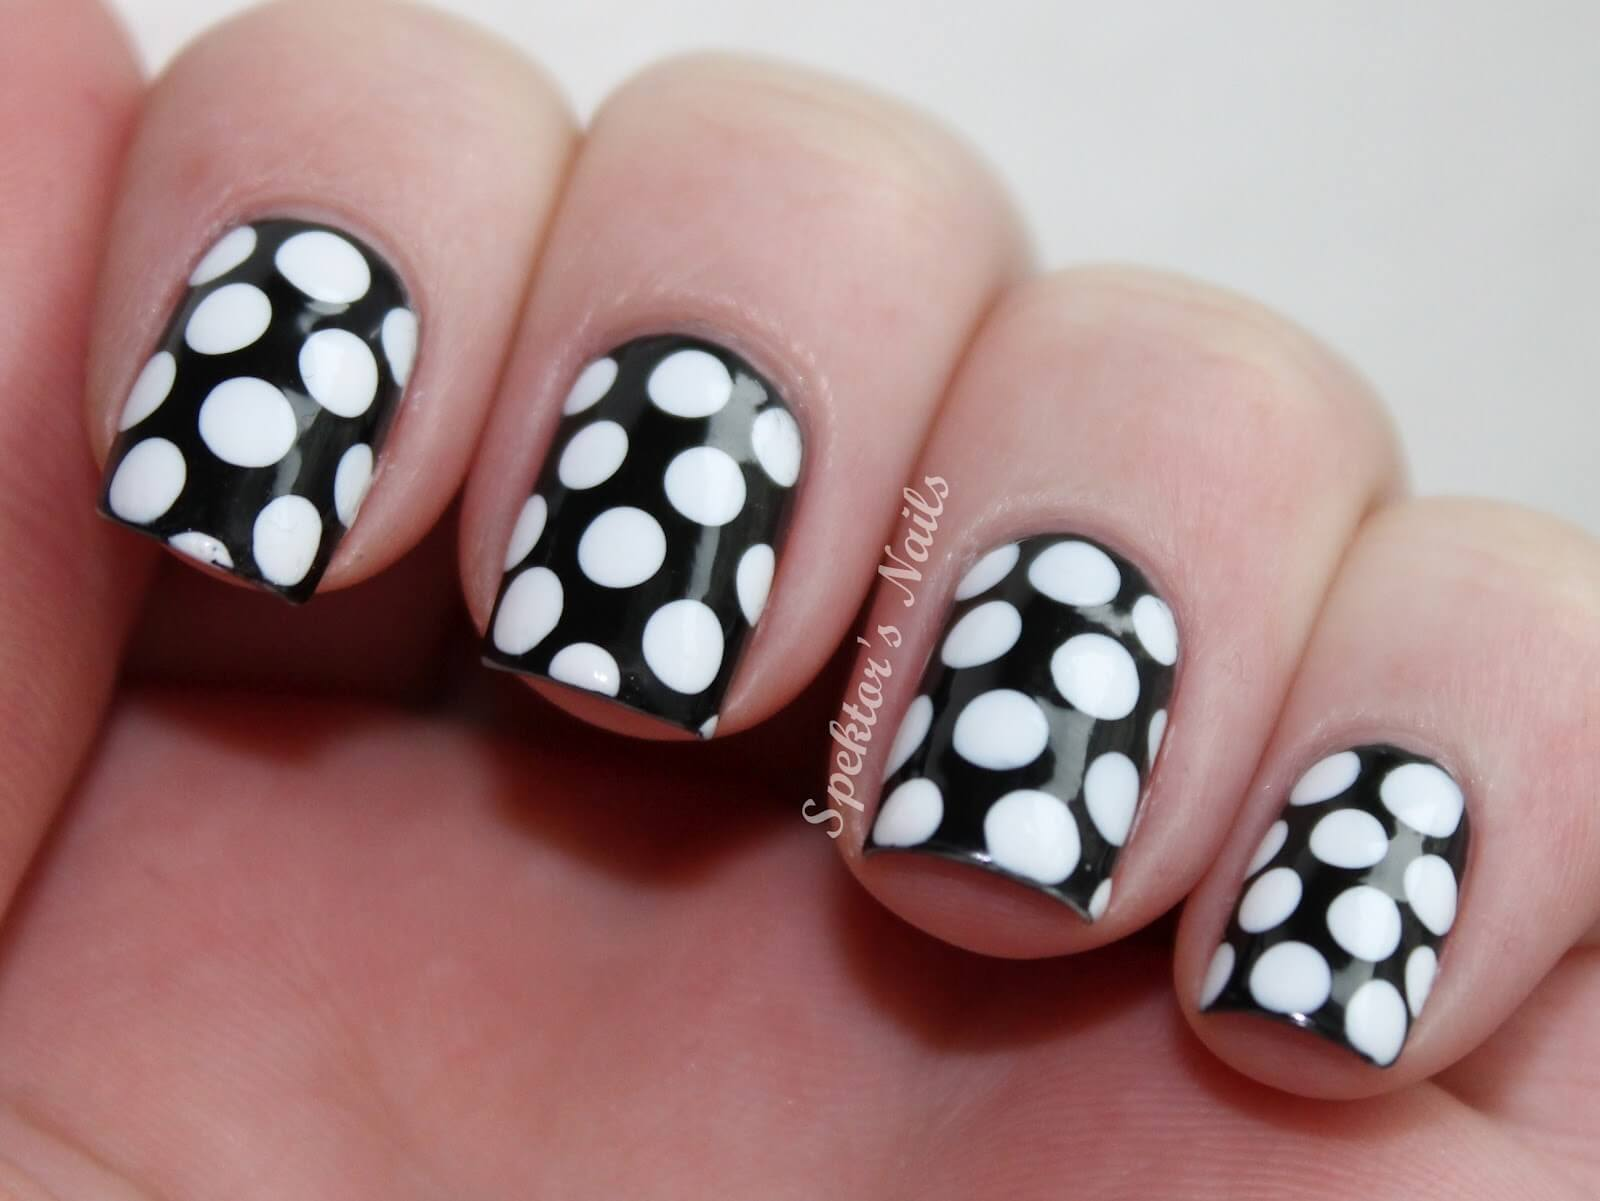 40 Black And White Polka Dot Nail Art Designs For Trendy Girls